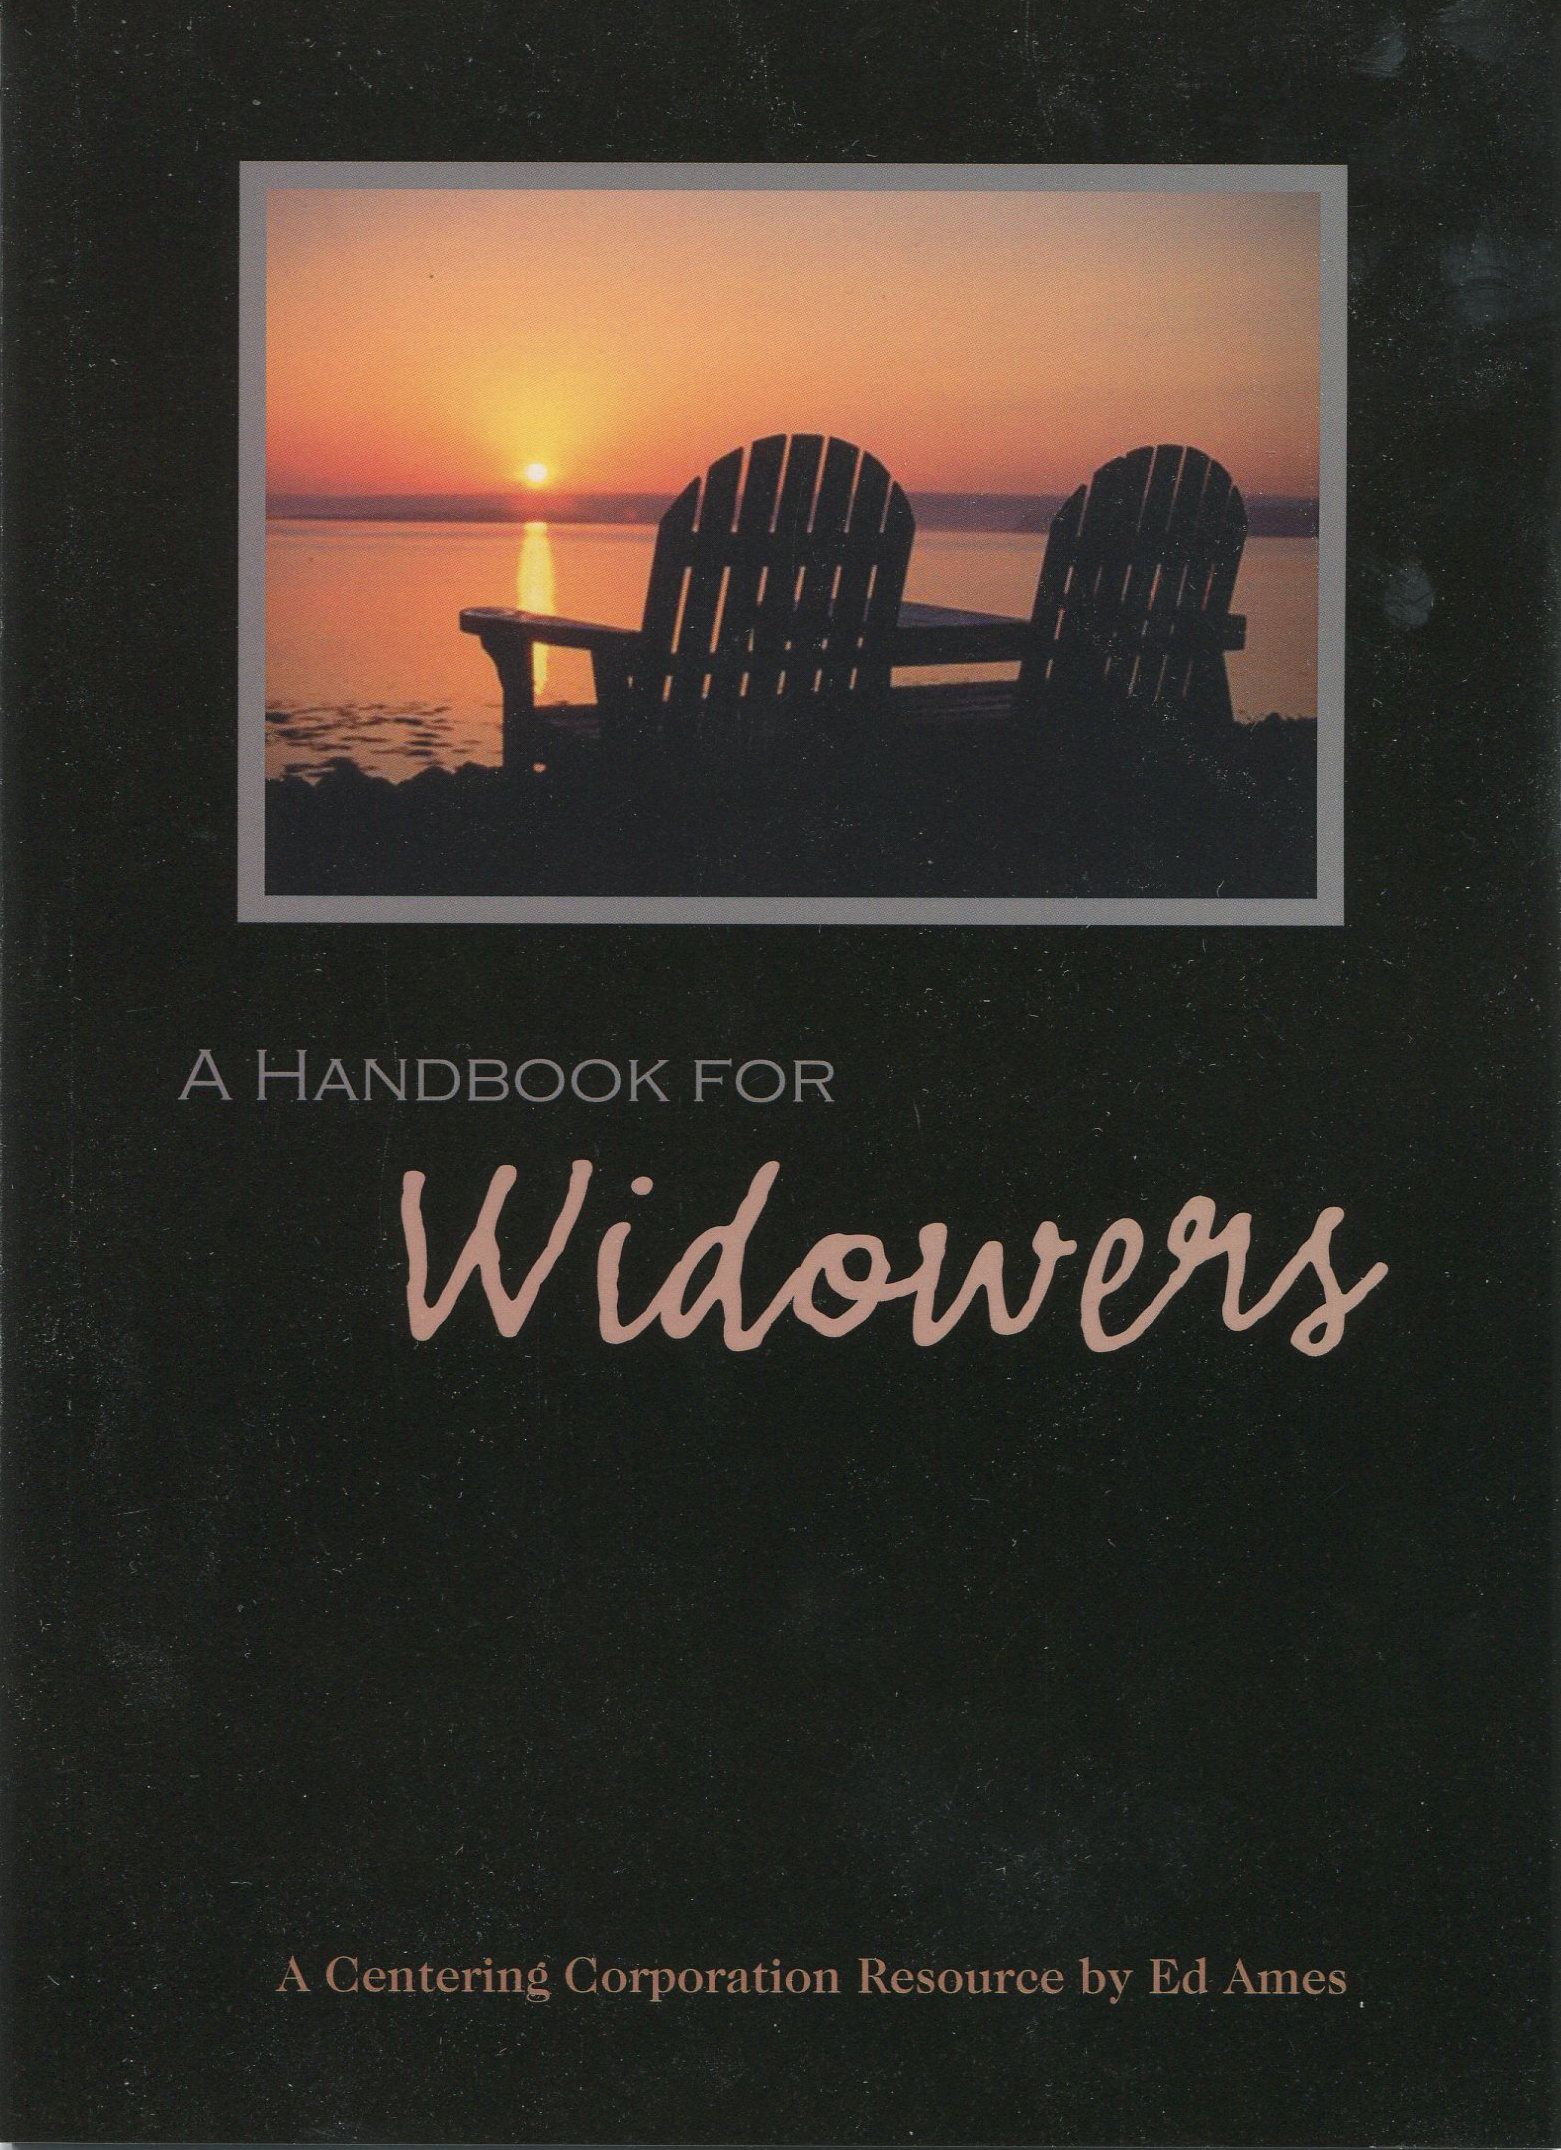 Handbook for Widowers, A